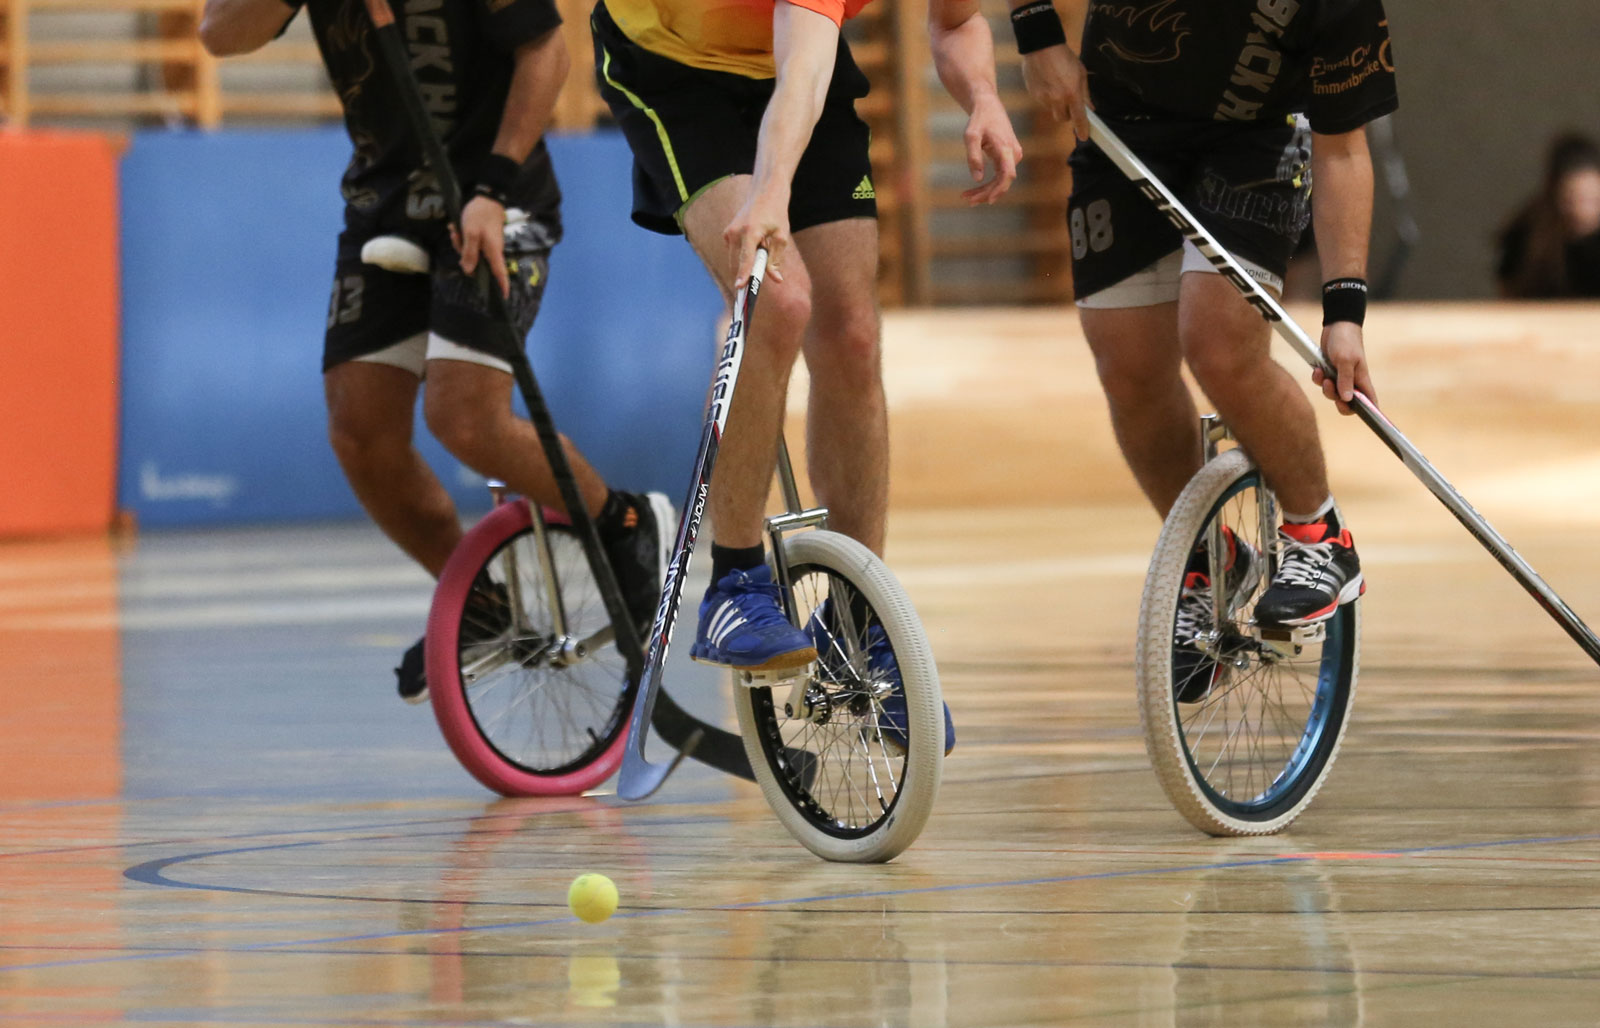 Absage SUHL-Turnier in Biberist - Swiss Indoor- & Unicycling